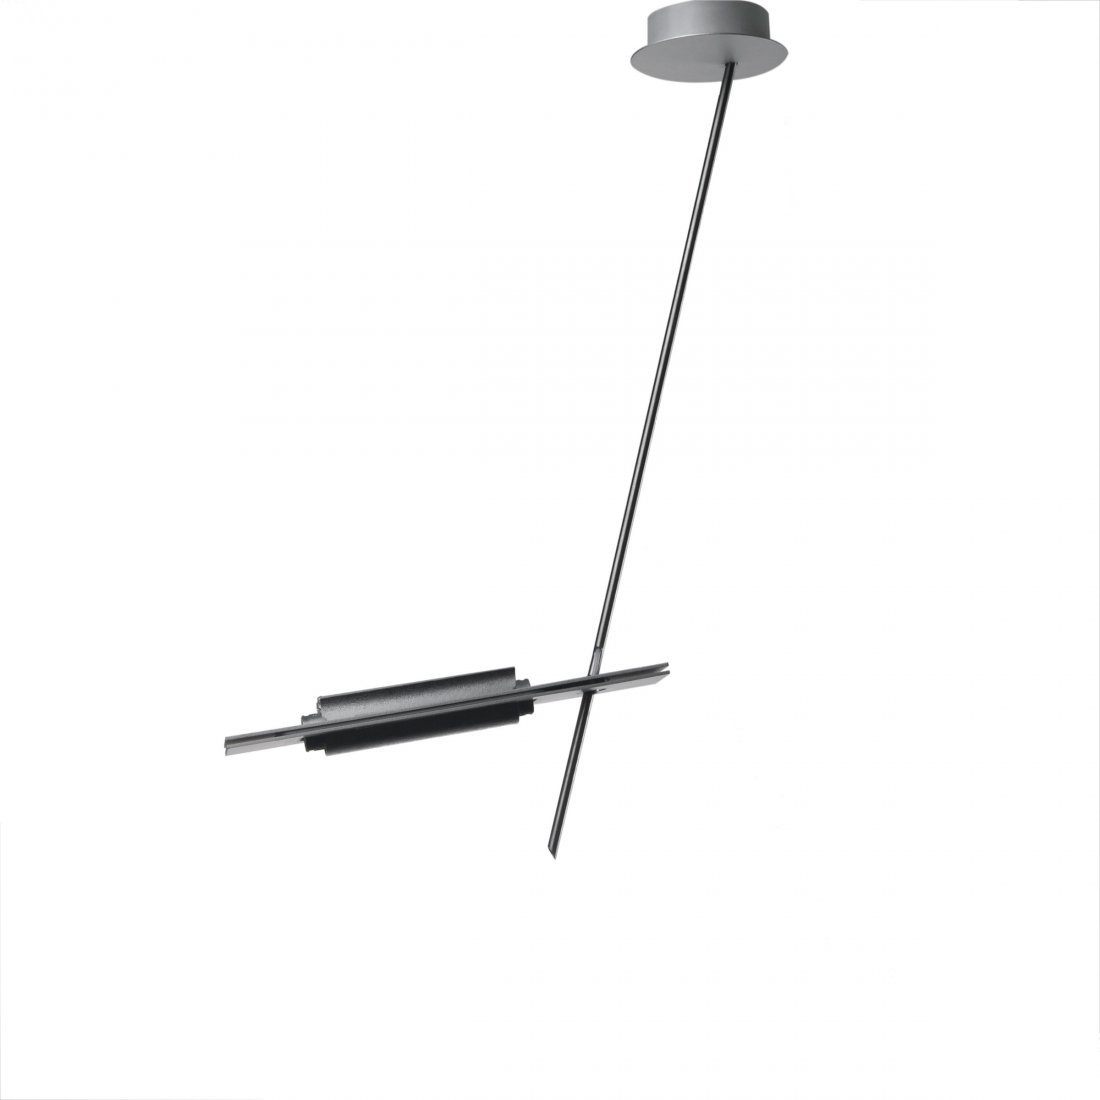 'Wandering Finger' ceiling light/bracket, 1994